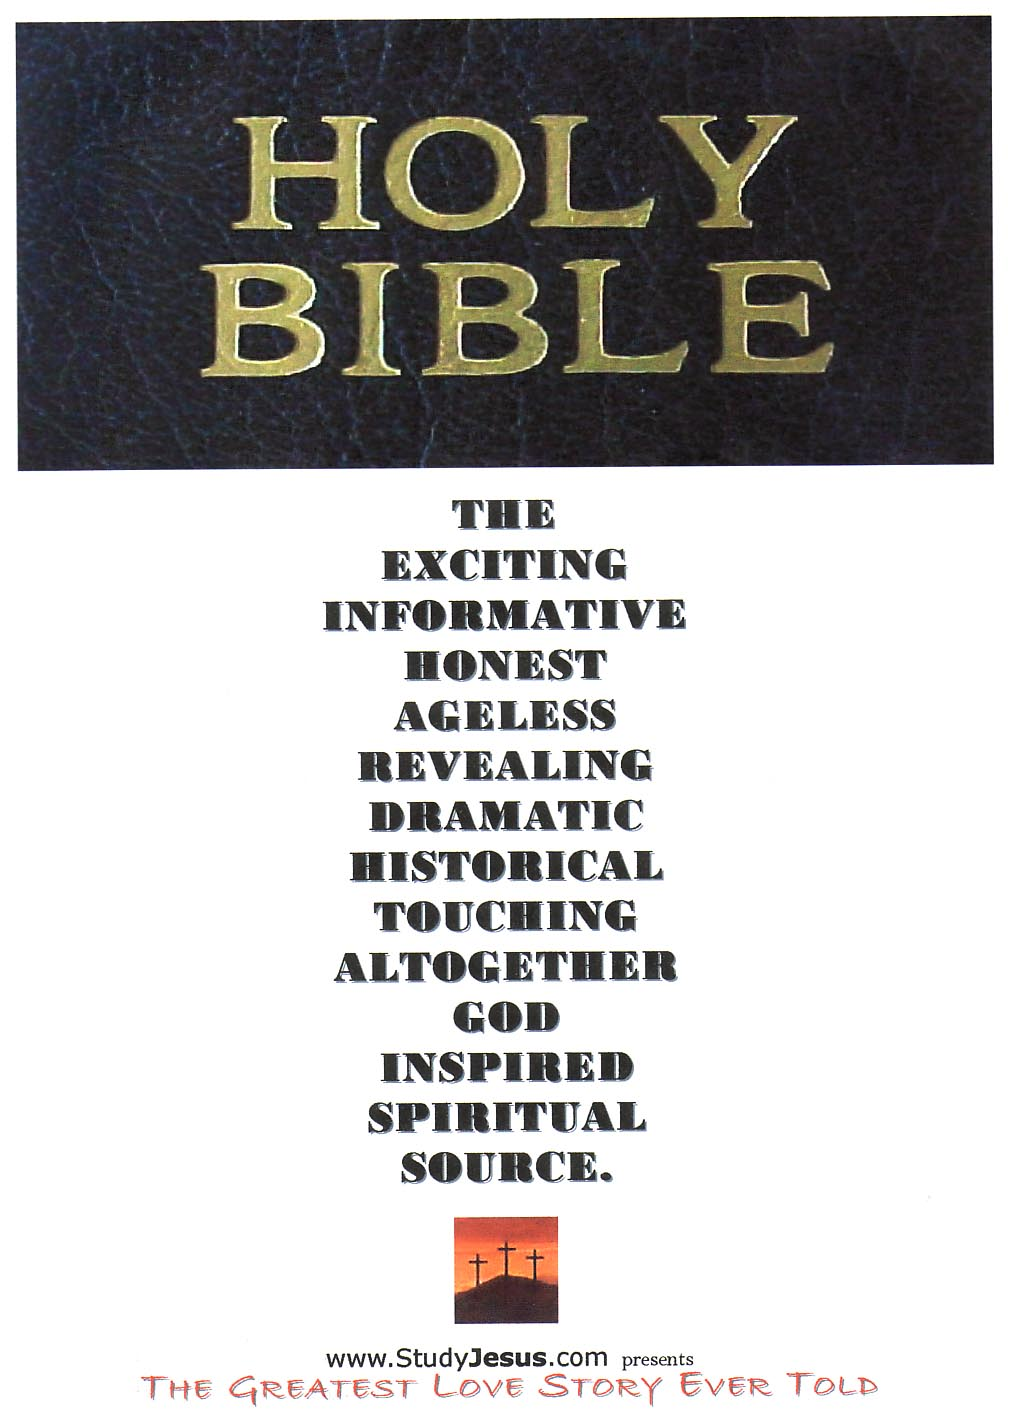 Bible Study Tools on the App Store - itunes.apple.com